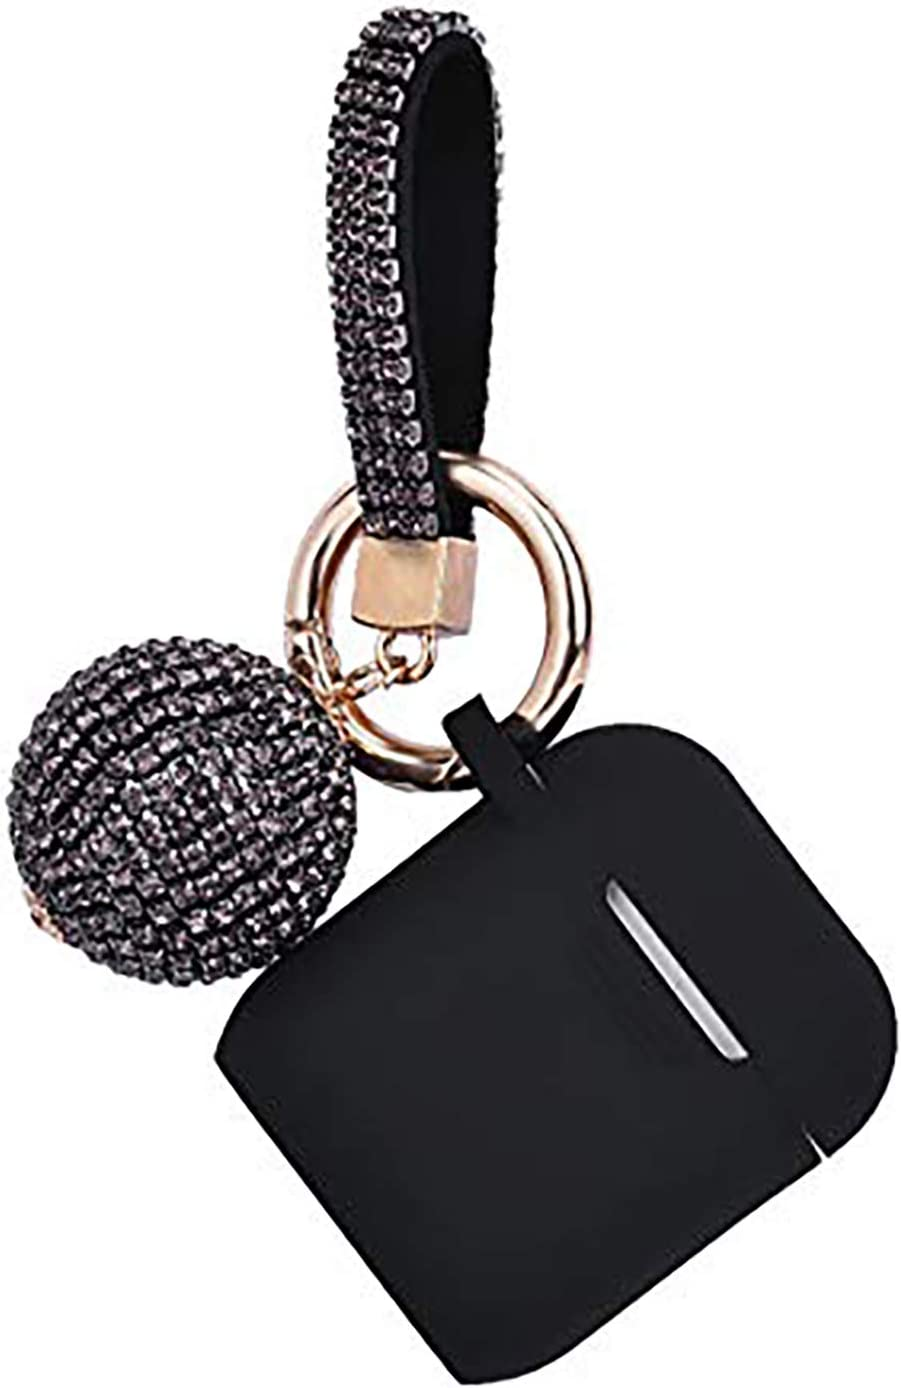 Case for Airpods, Filoto Bling Airpod Silicone Case Cover Skin, Air Pods Protective Glitter Case with Shiny Disco Ball Keychain, Scratch Proof and Drop Proof for Apple Airpods 2&1 (Black)